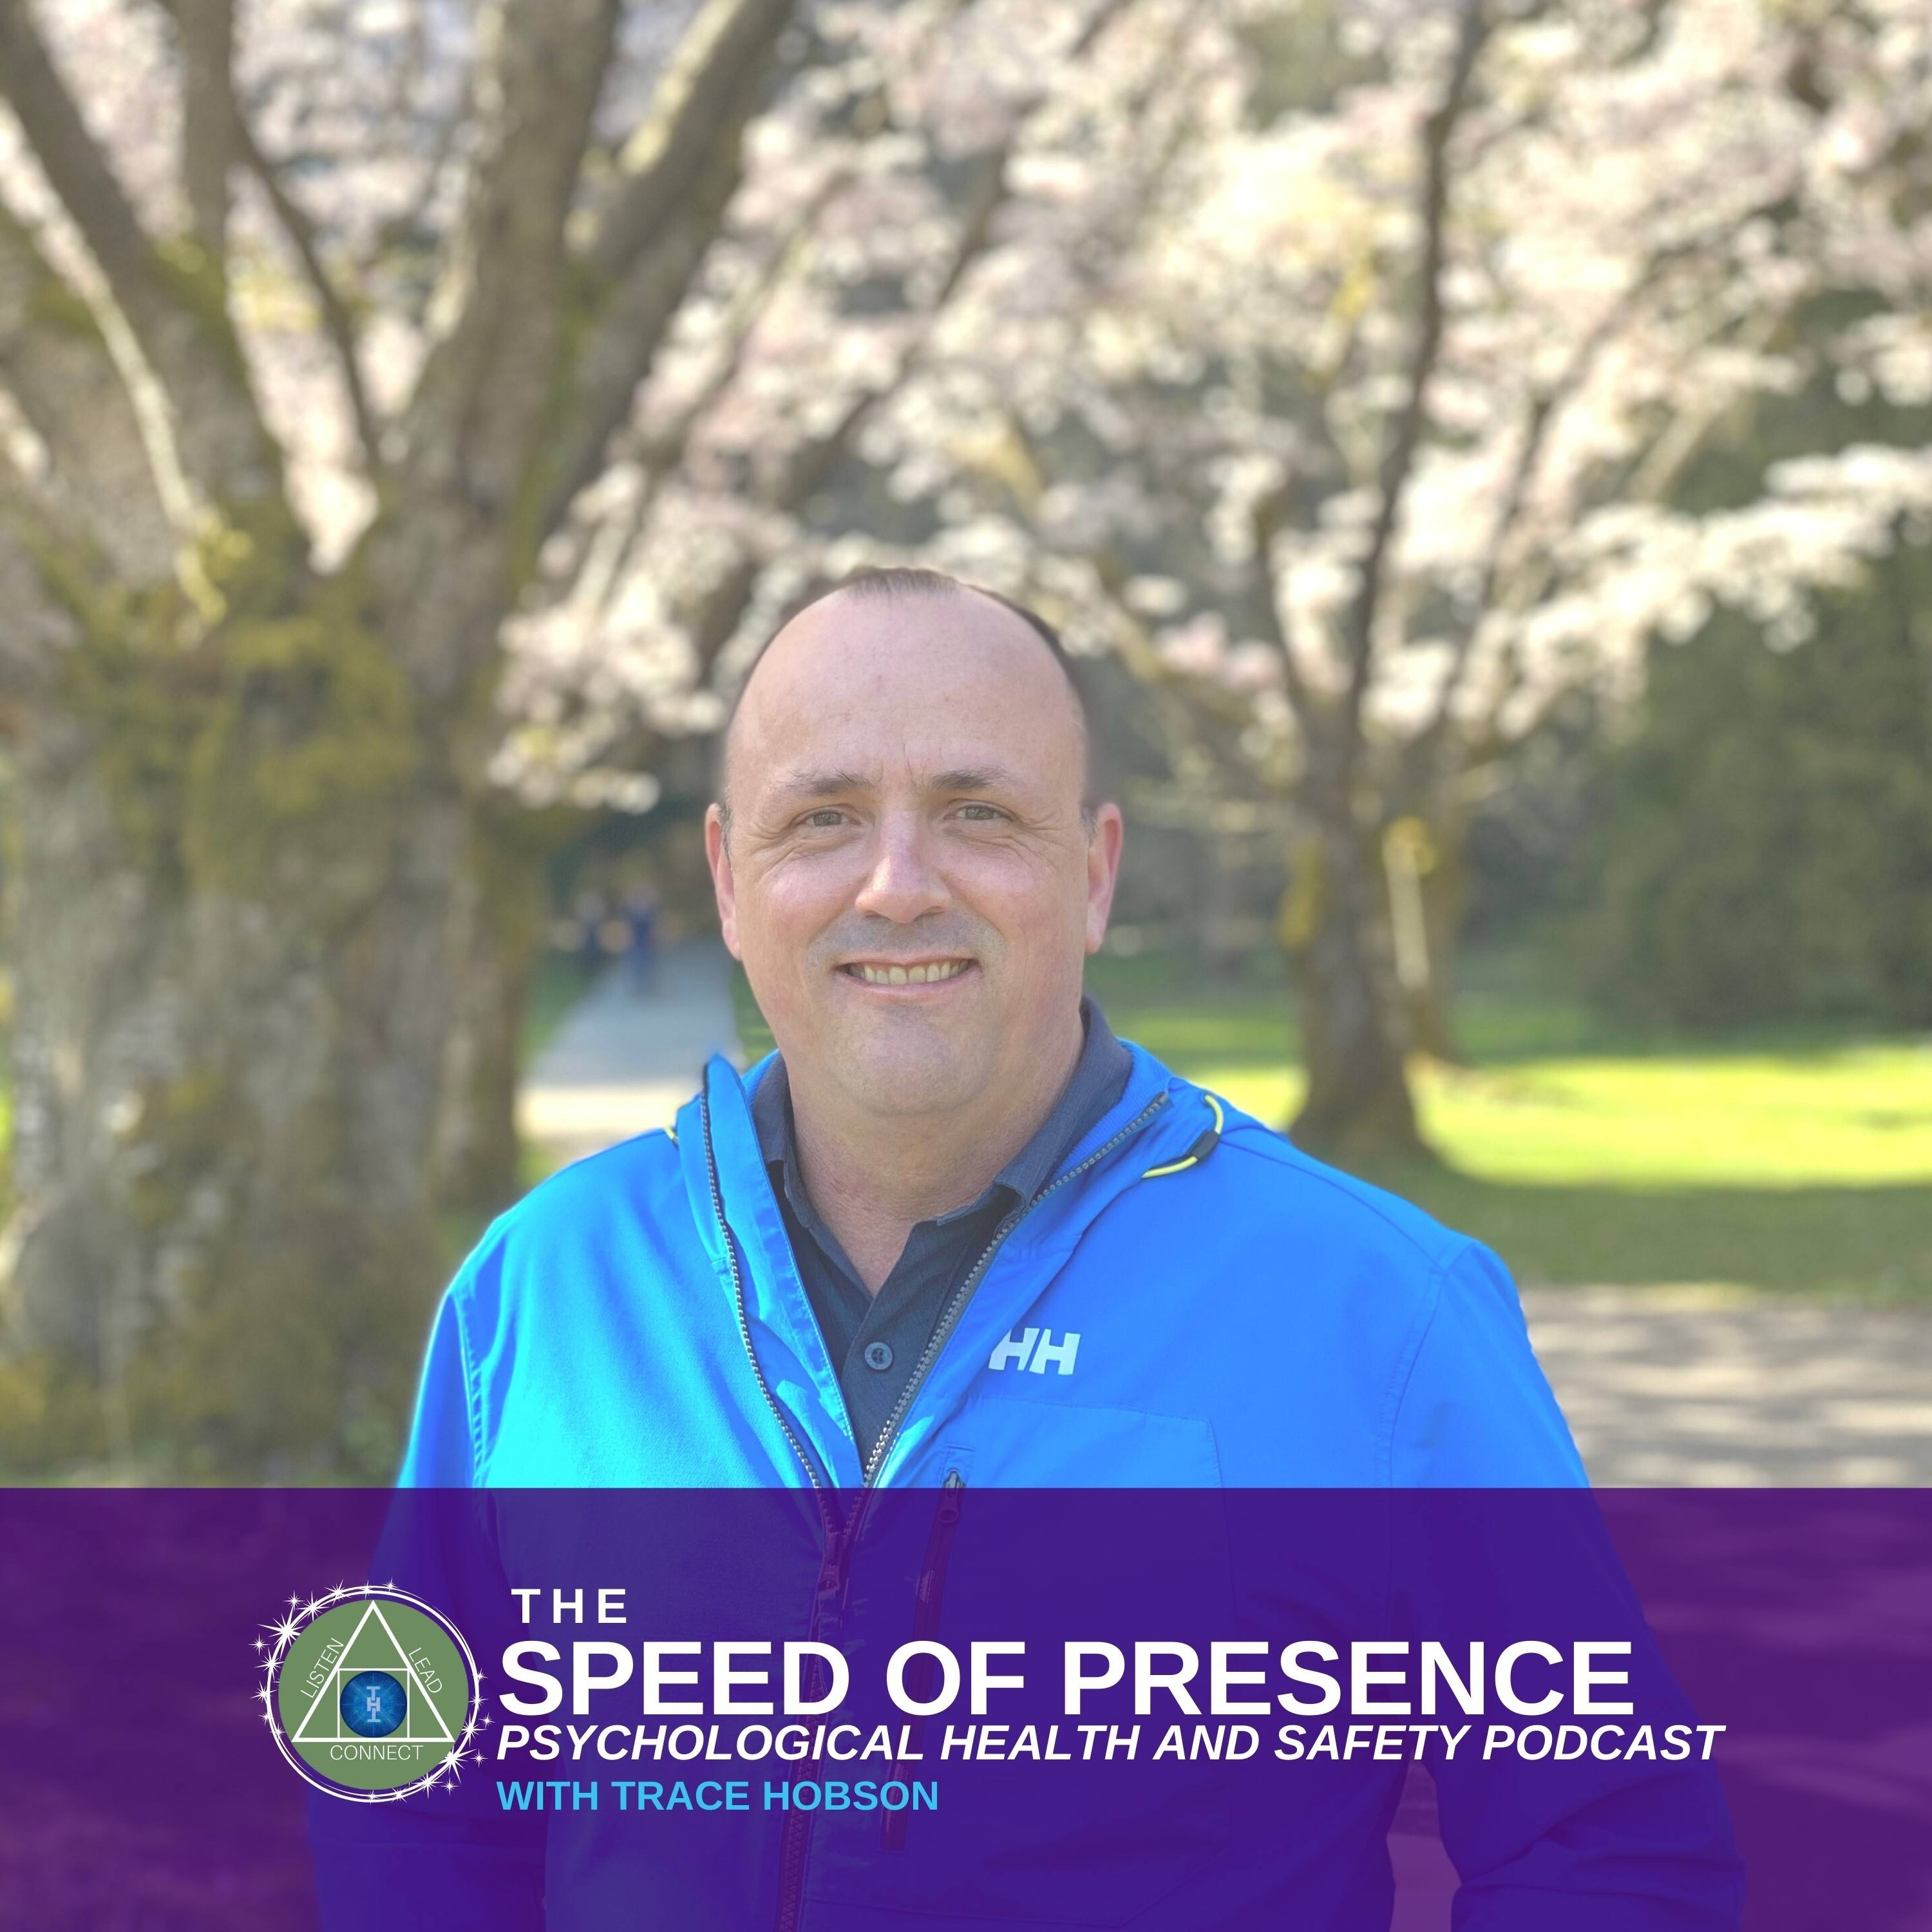 Speed of Presence Psychological Health and Safety Podcast